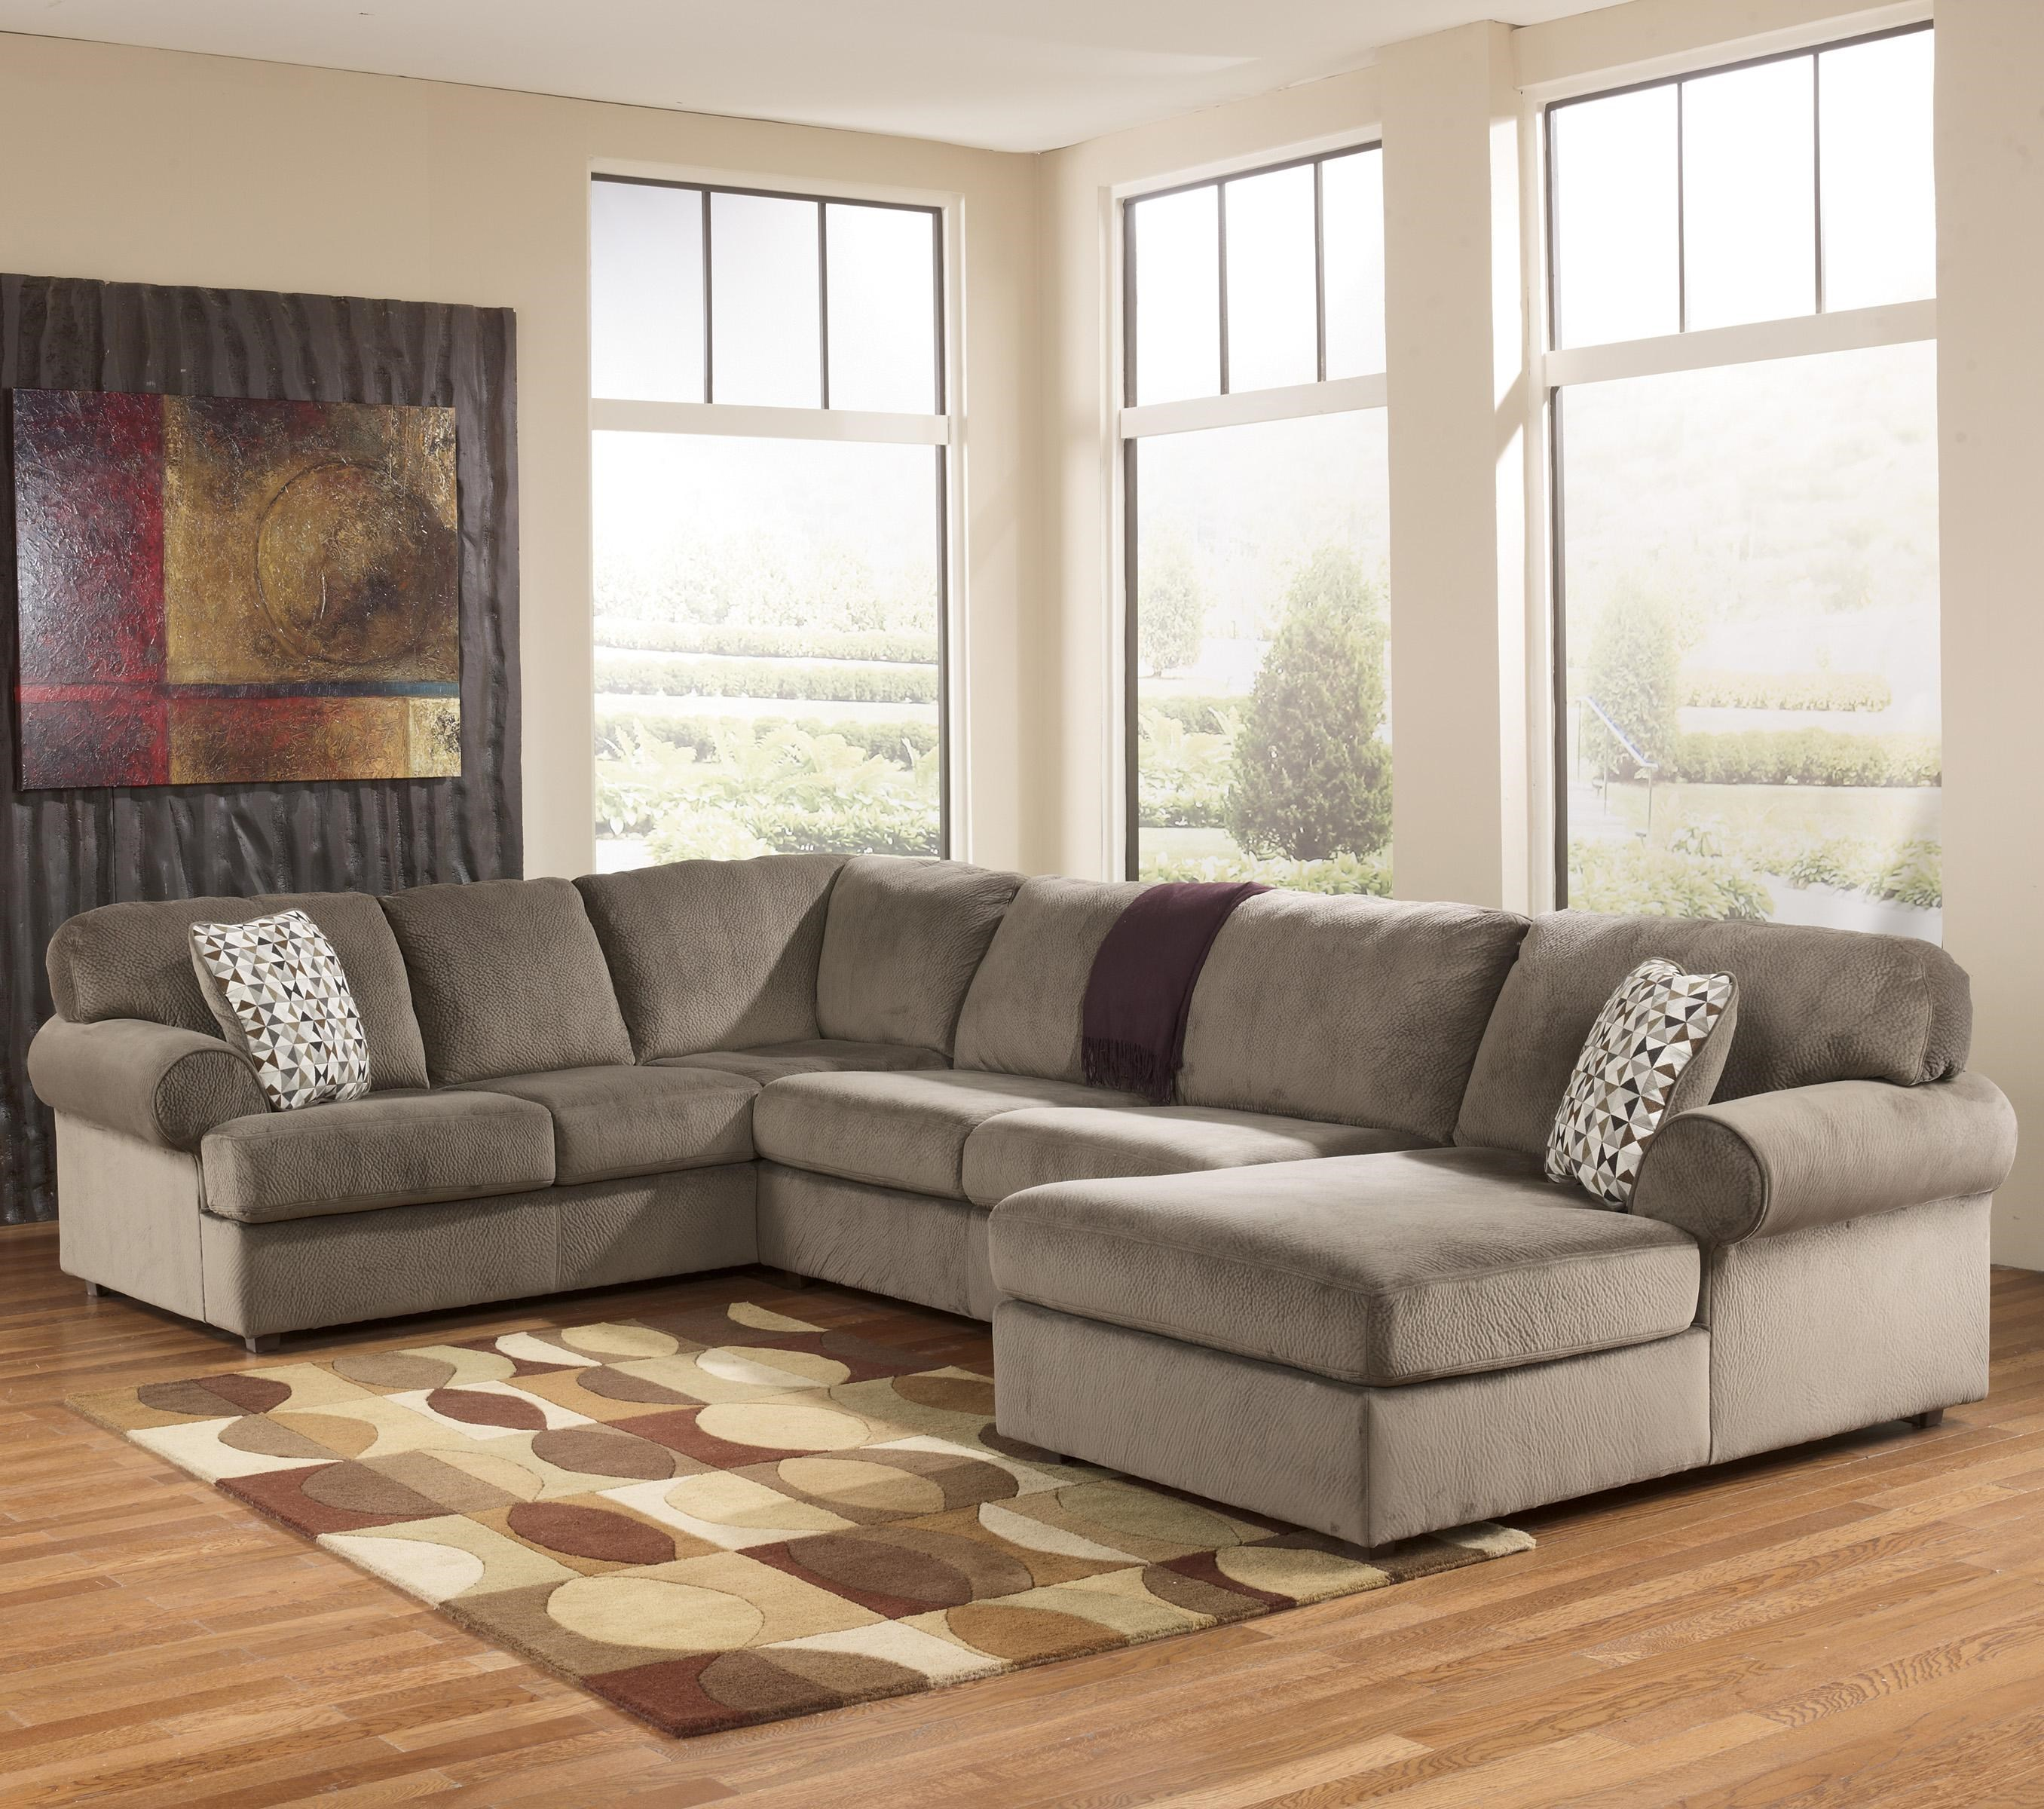 Ashley Signature Design Jessa Place   DuneSectional Sofa With Right Chaise  ...